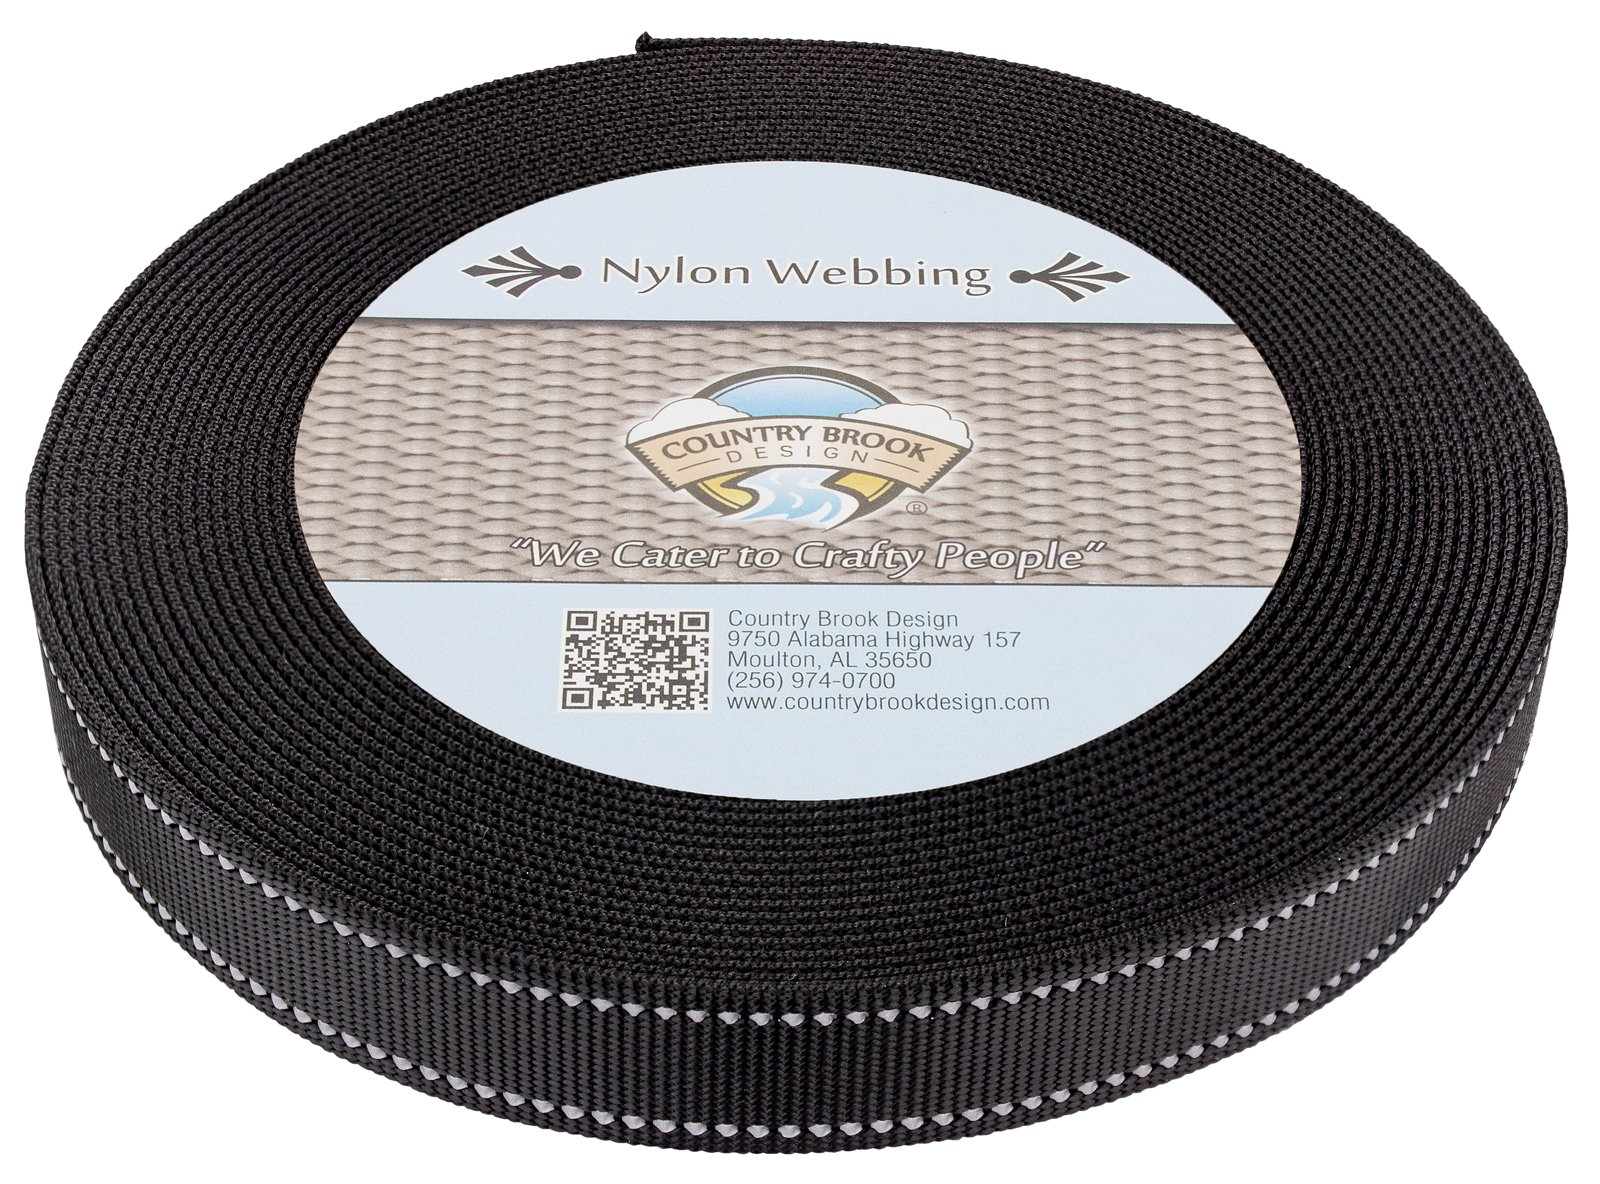 Country Brook Design | 1 Inch Black Reflective Nylon Webbing, 50 Yards